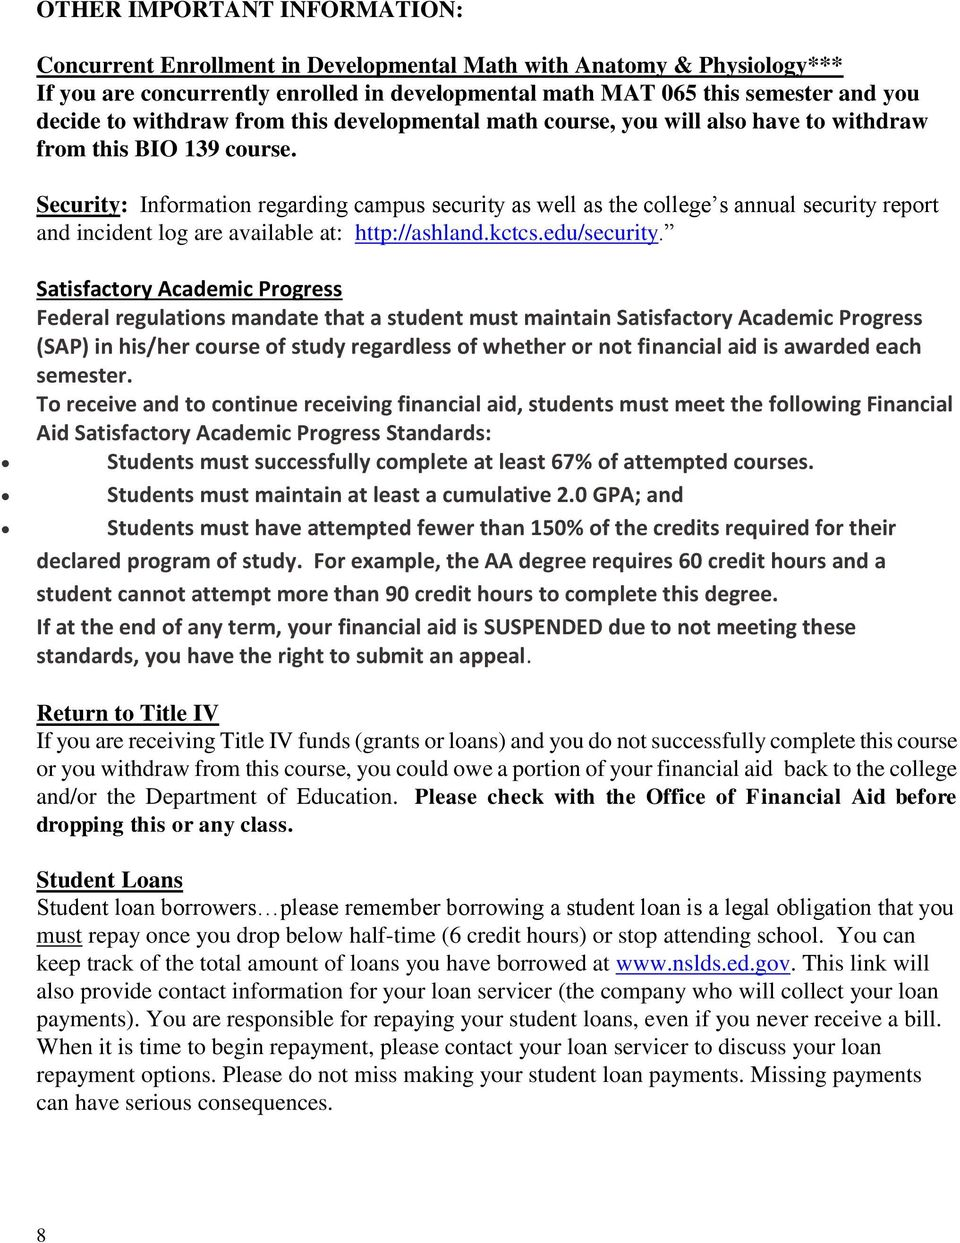 Security: Information regarding campus security as well as the college s annual security report and incident log are available at: http://ashland.kctcs.edu/security.